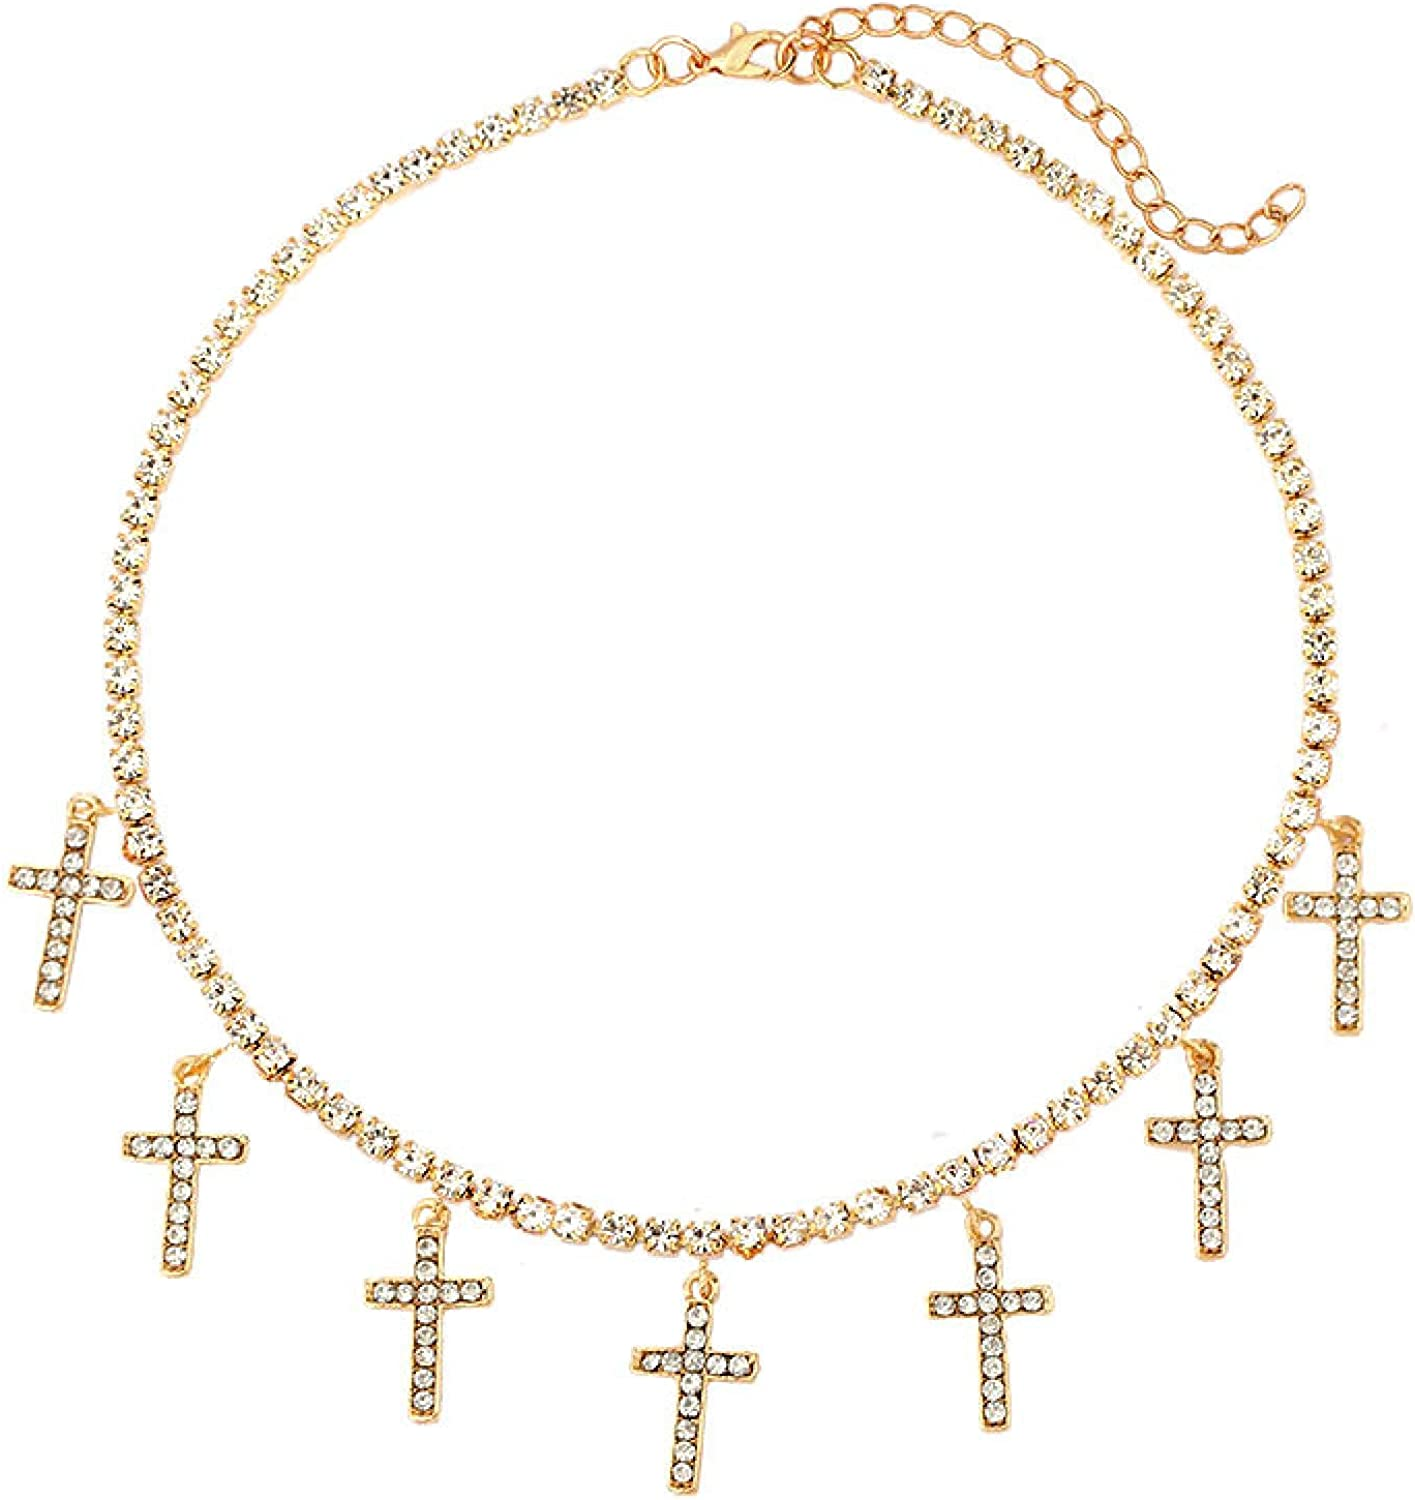 Bling Crystal Cross Pendant Necklace Collar Statement Rhinestone Chain Choker Necklace For Women Jewelry